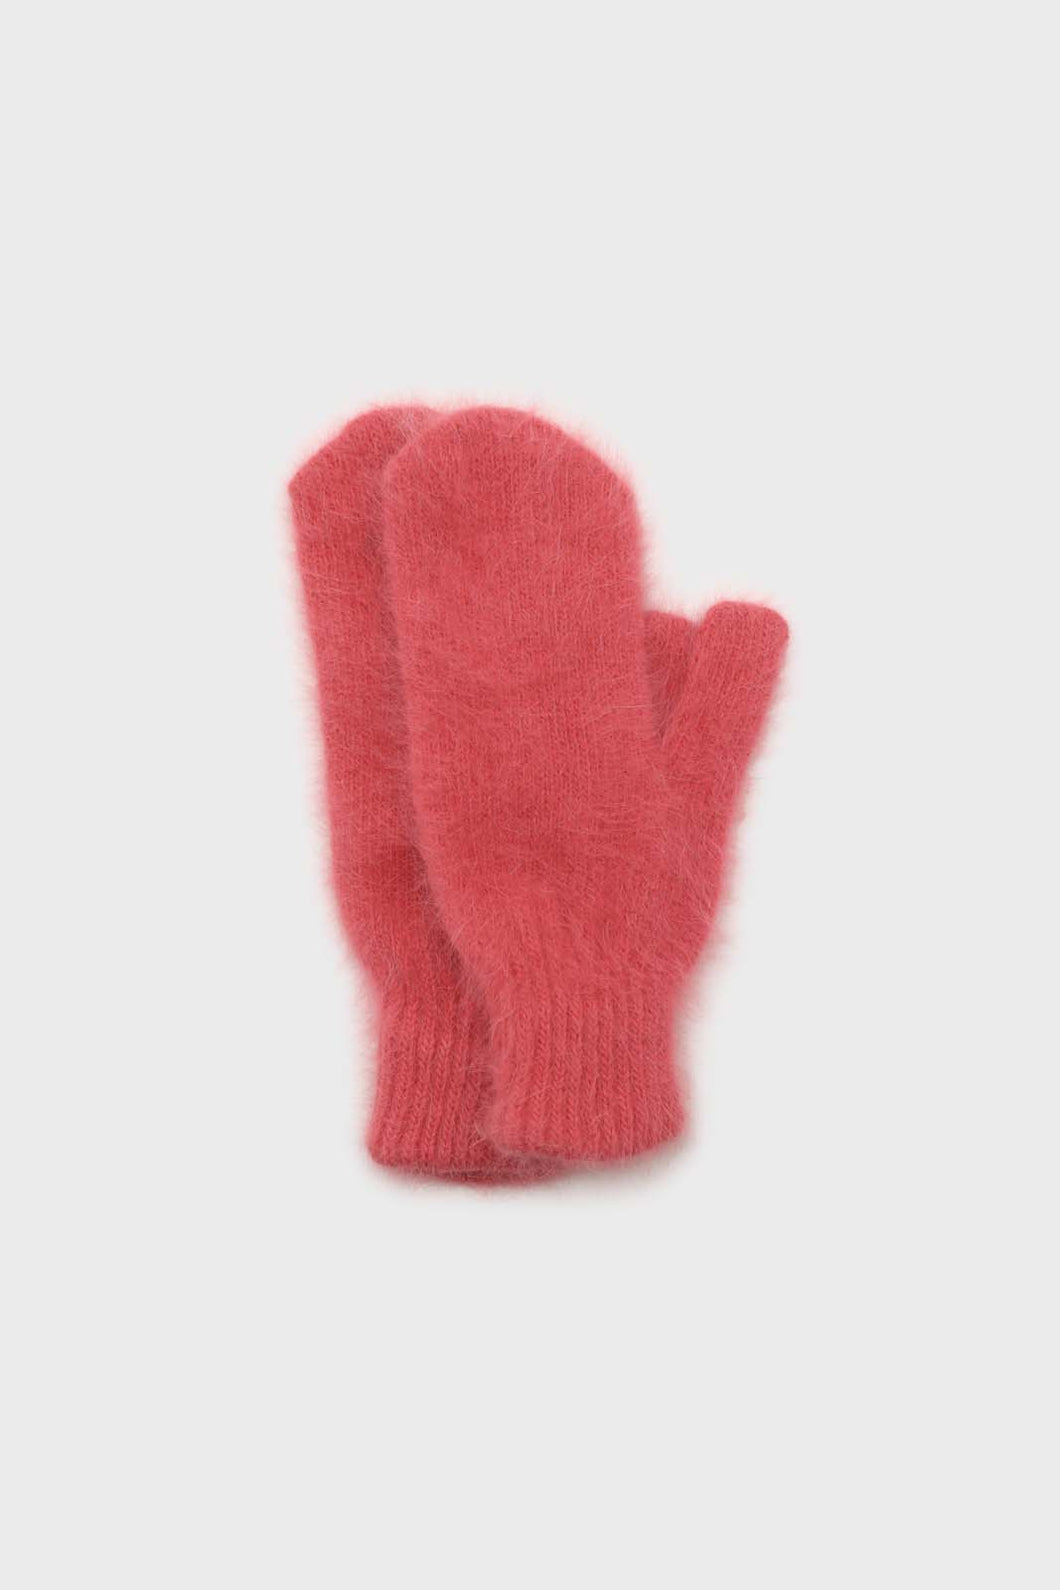 Dusty rose mohair mittens1sx